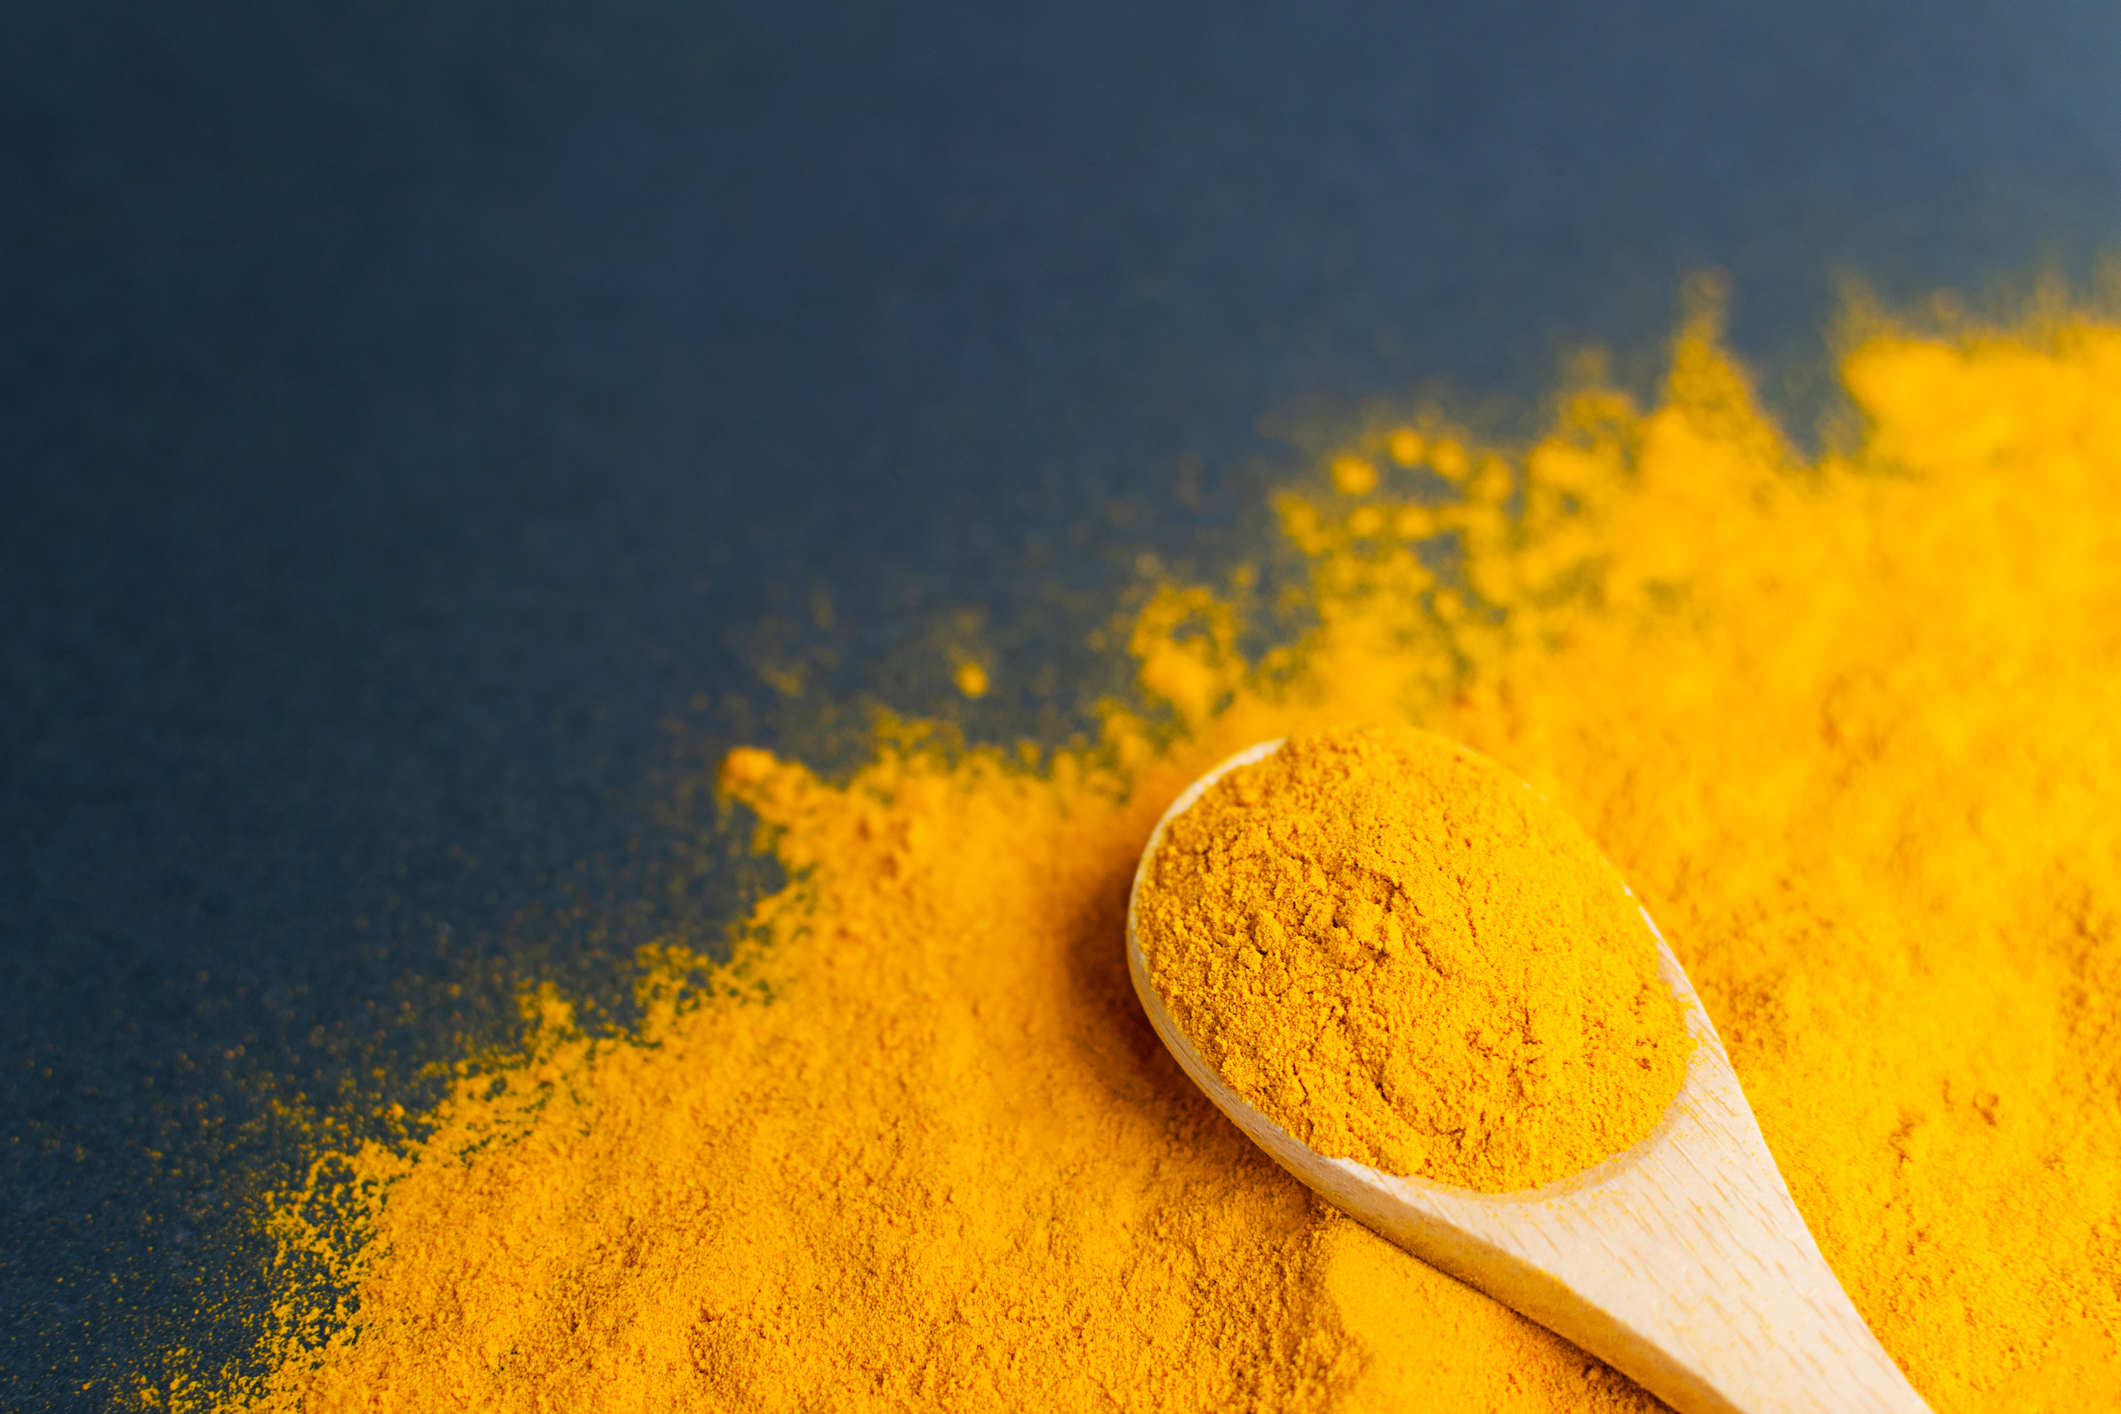 Curcumin: The spice that wards off liver damage